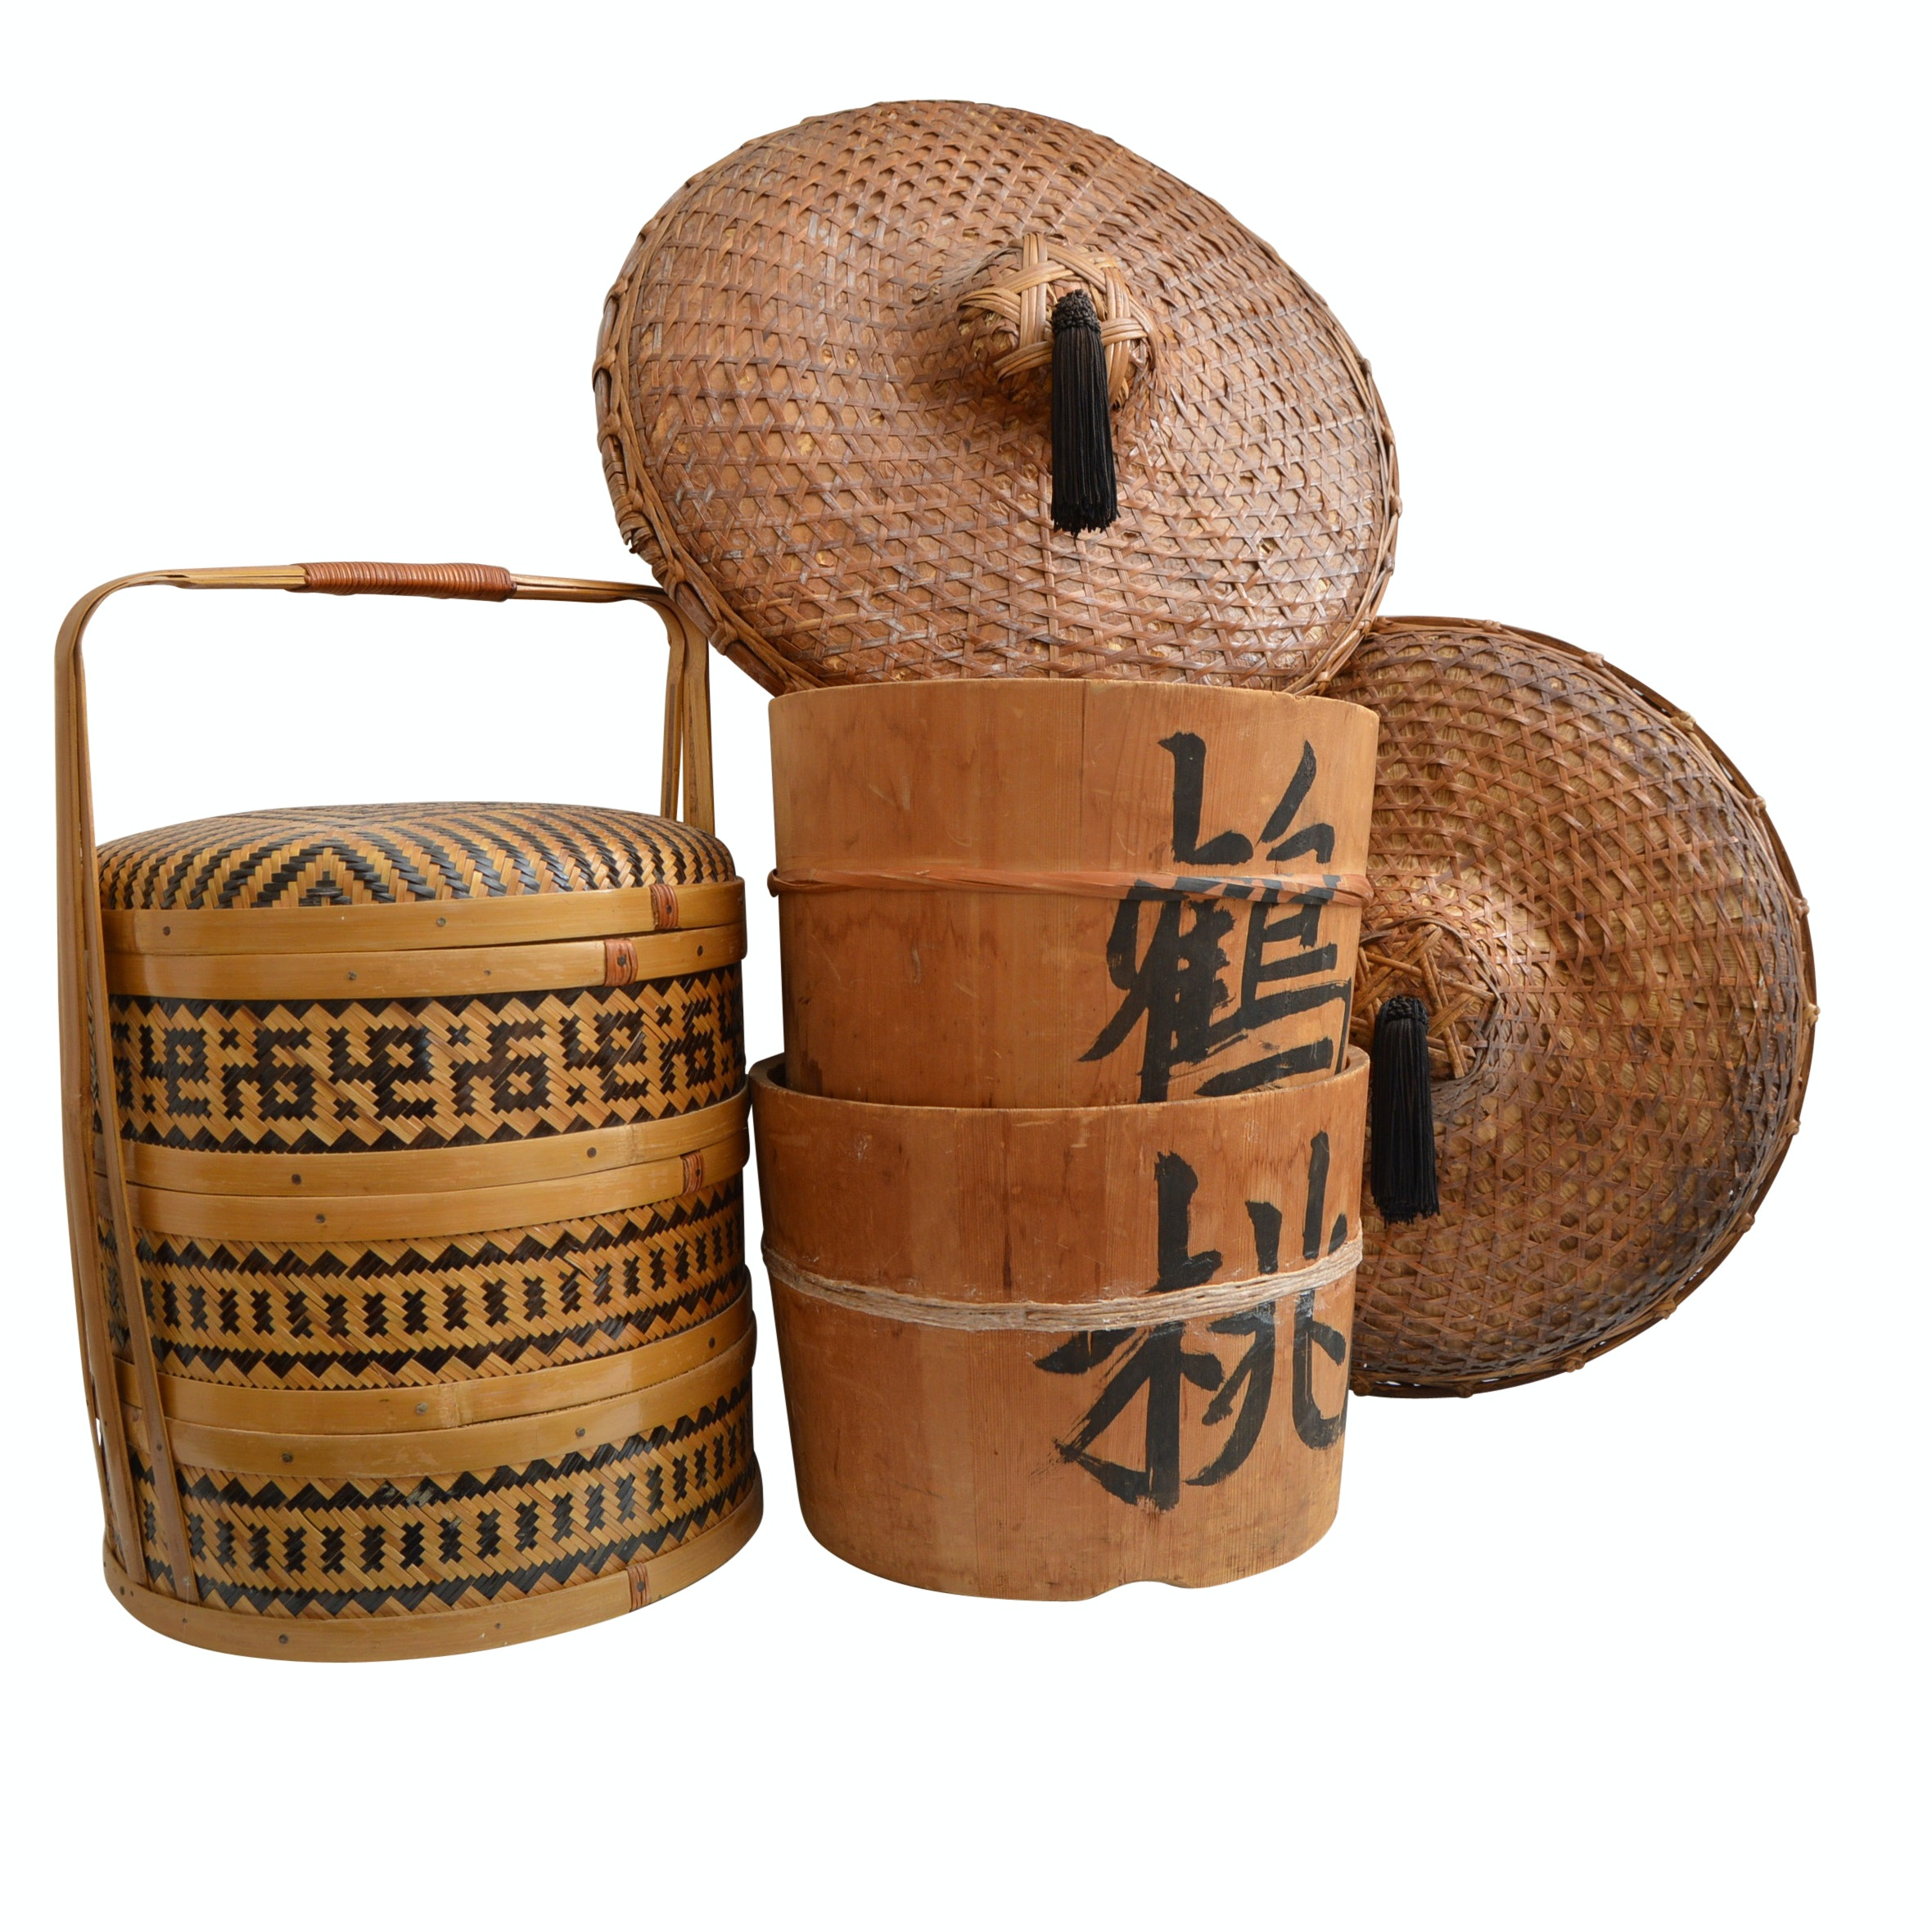 Vintage Chinese Baskets and Hats